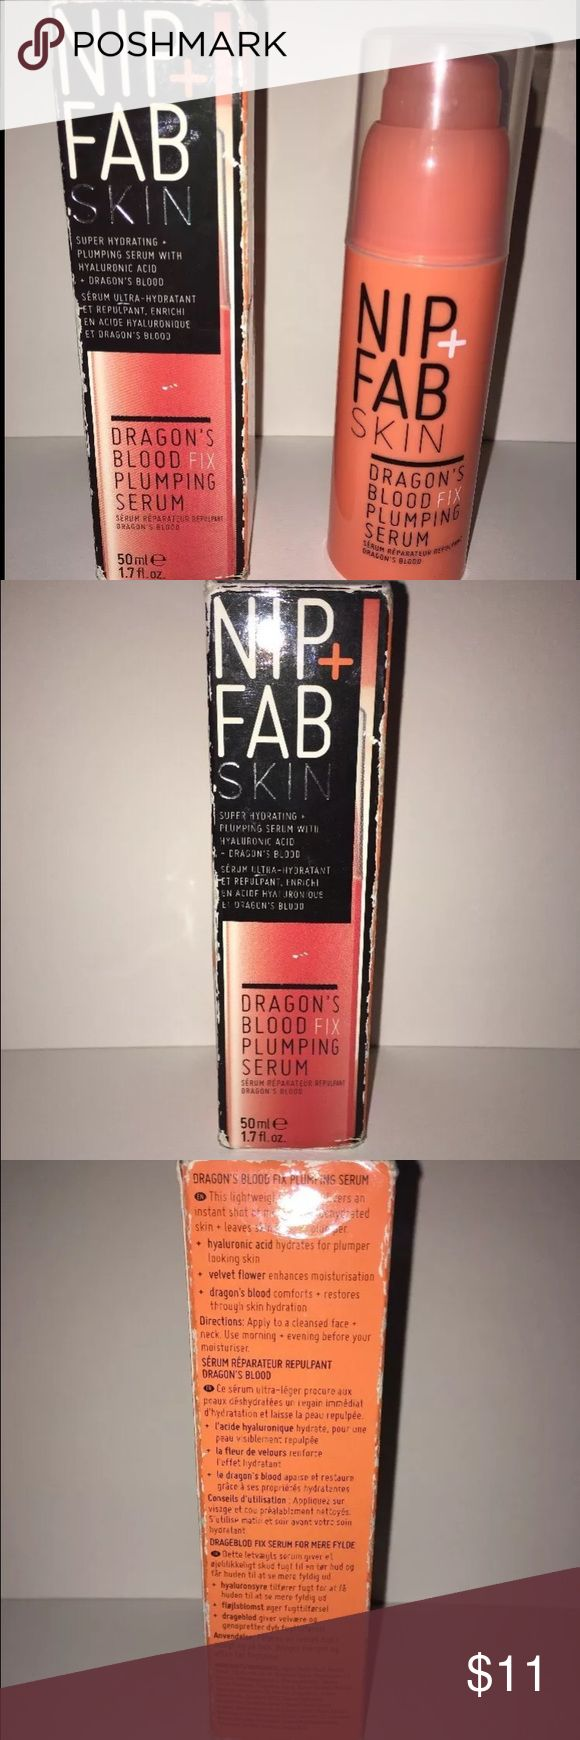 Nip + Fab Skin Dragons Blood Fix Plumping Serum a 1.7oz tube of Nip+Fab Skin Dragon's Blood fix plumping serum. Super hydrating plumping serum w/ hyaluronic acid&dragon's blood. Delivers an instant shot of moisture to dehydrated skin & leaves skin looking plumper. -Hyaluronic acid hydrates for pumper looking skin. -Velvet flower enhances moisturization. -Dragon's blood comforts and restores through skin hydration. Apply to cleansed face/neck, use a.m. & p.m. before your moisturizer! Each box…